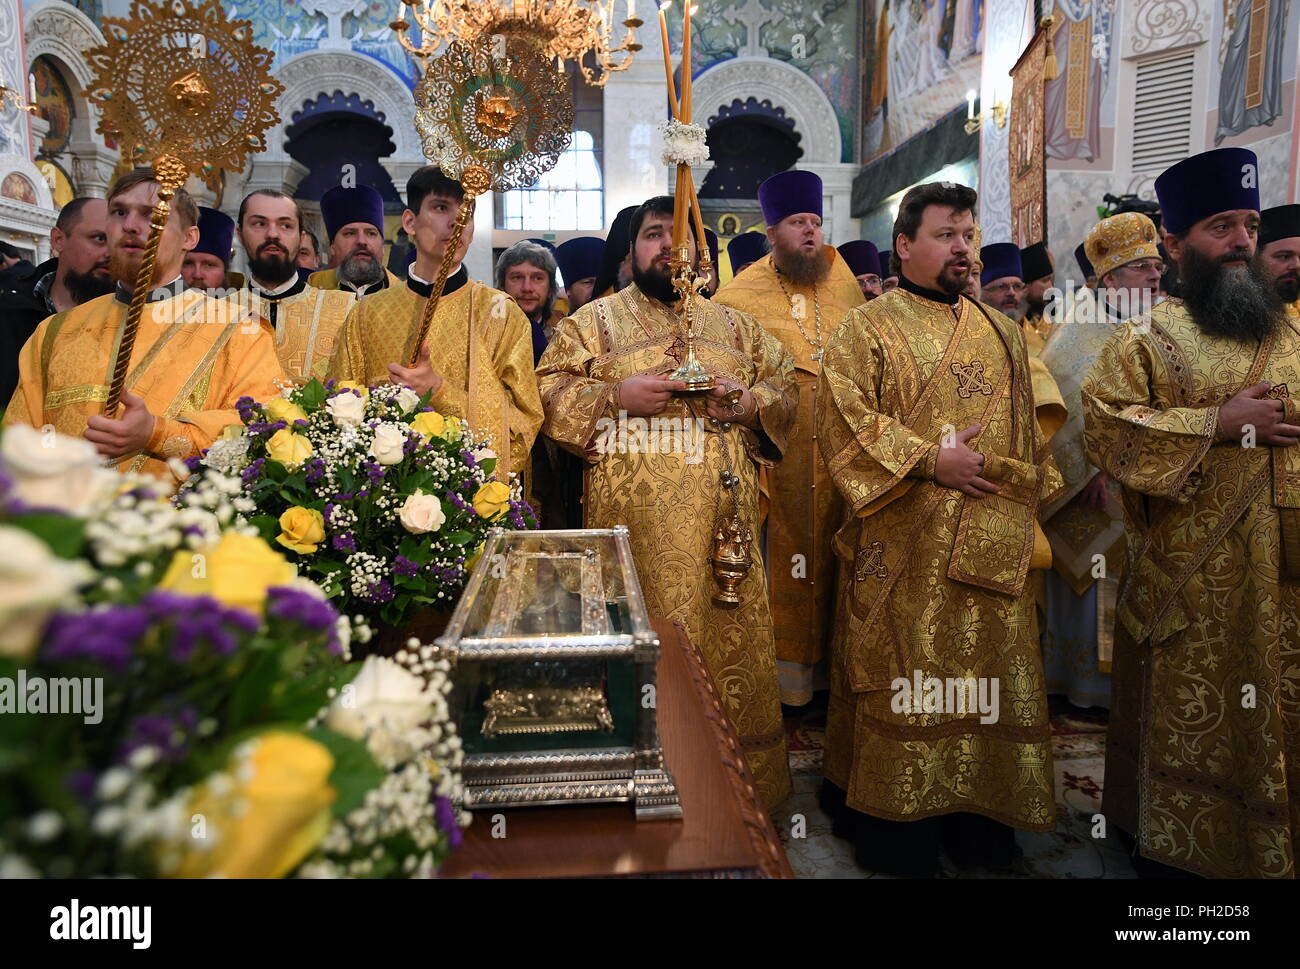 Yekaterinburg, Russia. 30th Aug, 2018. YEKATERINBURG, RUSSIA - AUGUST 30, 2018: Russian Orthodox clergy during the arrival of relics of Saint Spyridon of Trimythous from Corfu, Greece, at the Church on Blood in Honour of All Saints Resplendent in the Russian Land, in the city of Yekaterinburg; the relics of St Spyridon arrived in Russia in August 2018 and are visiting Russian cities including Krasnodar, Yekaterinburg, Krasnoyarsk, Kemerovo, Tula, St Petersburg, Tver, Saratov, Cheboksary, Yaroslavl, and Moscow. Donat Sorokin/TASS Credit: ITAR-TASS News Agency/Alamy Live News - Stock Image